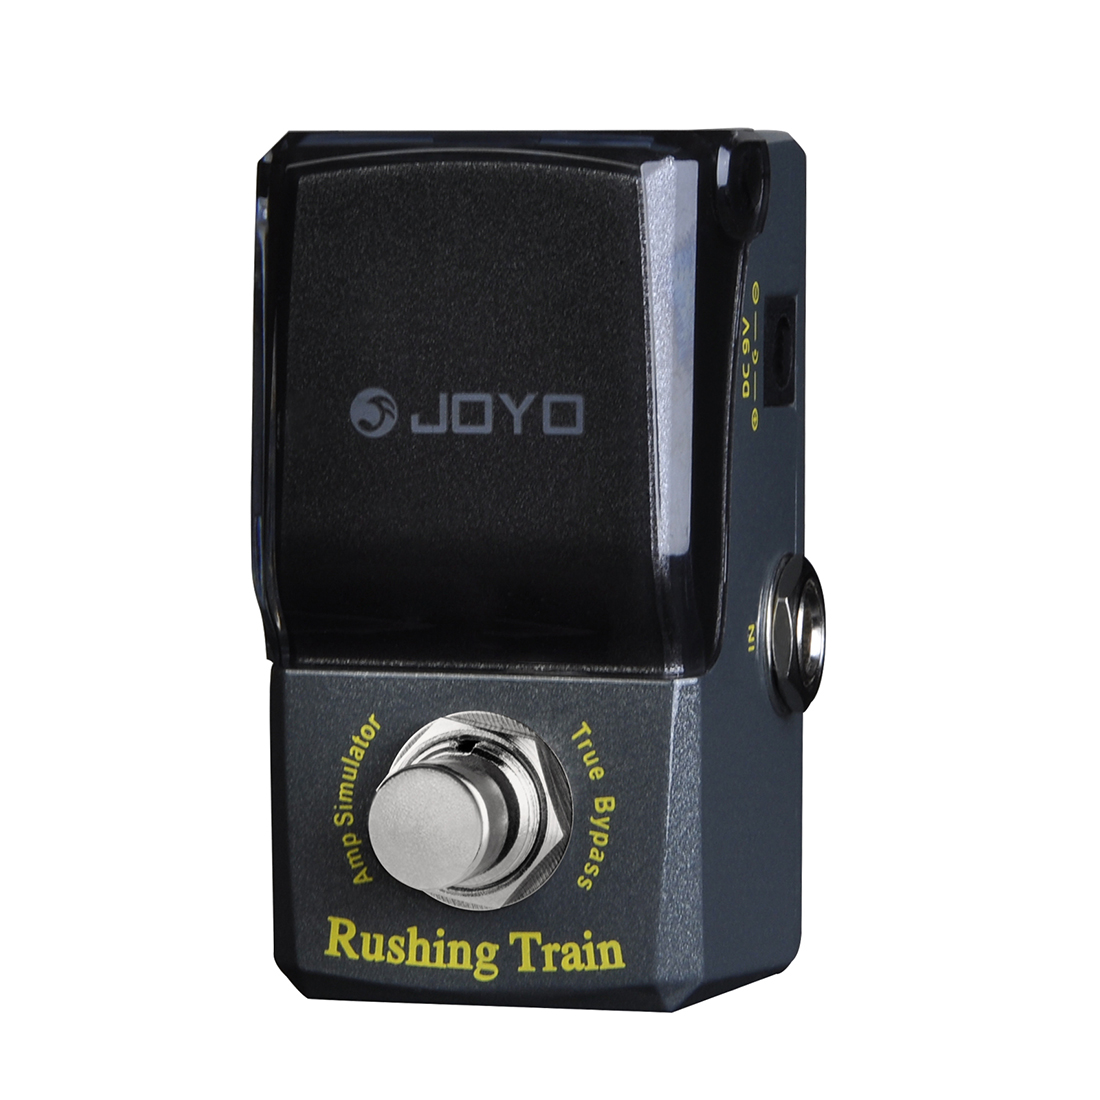 JOYO JF-306 Rushing Train VOX Cabinet Simulation Effects Pedal Effect Processor True Bypass for Guitar Wooden Sound Boogie new effect pedal mooer hustle drive distortion pedal true bypass excellent sound